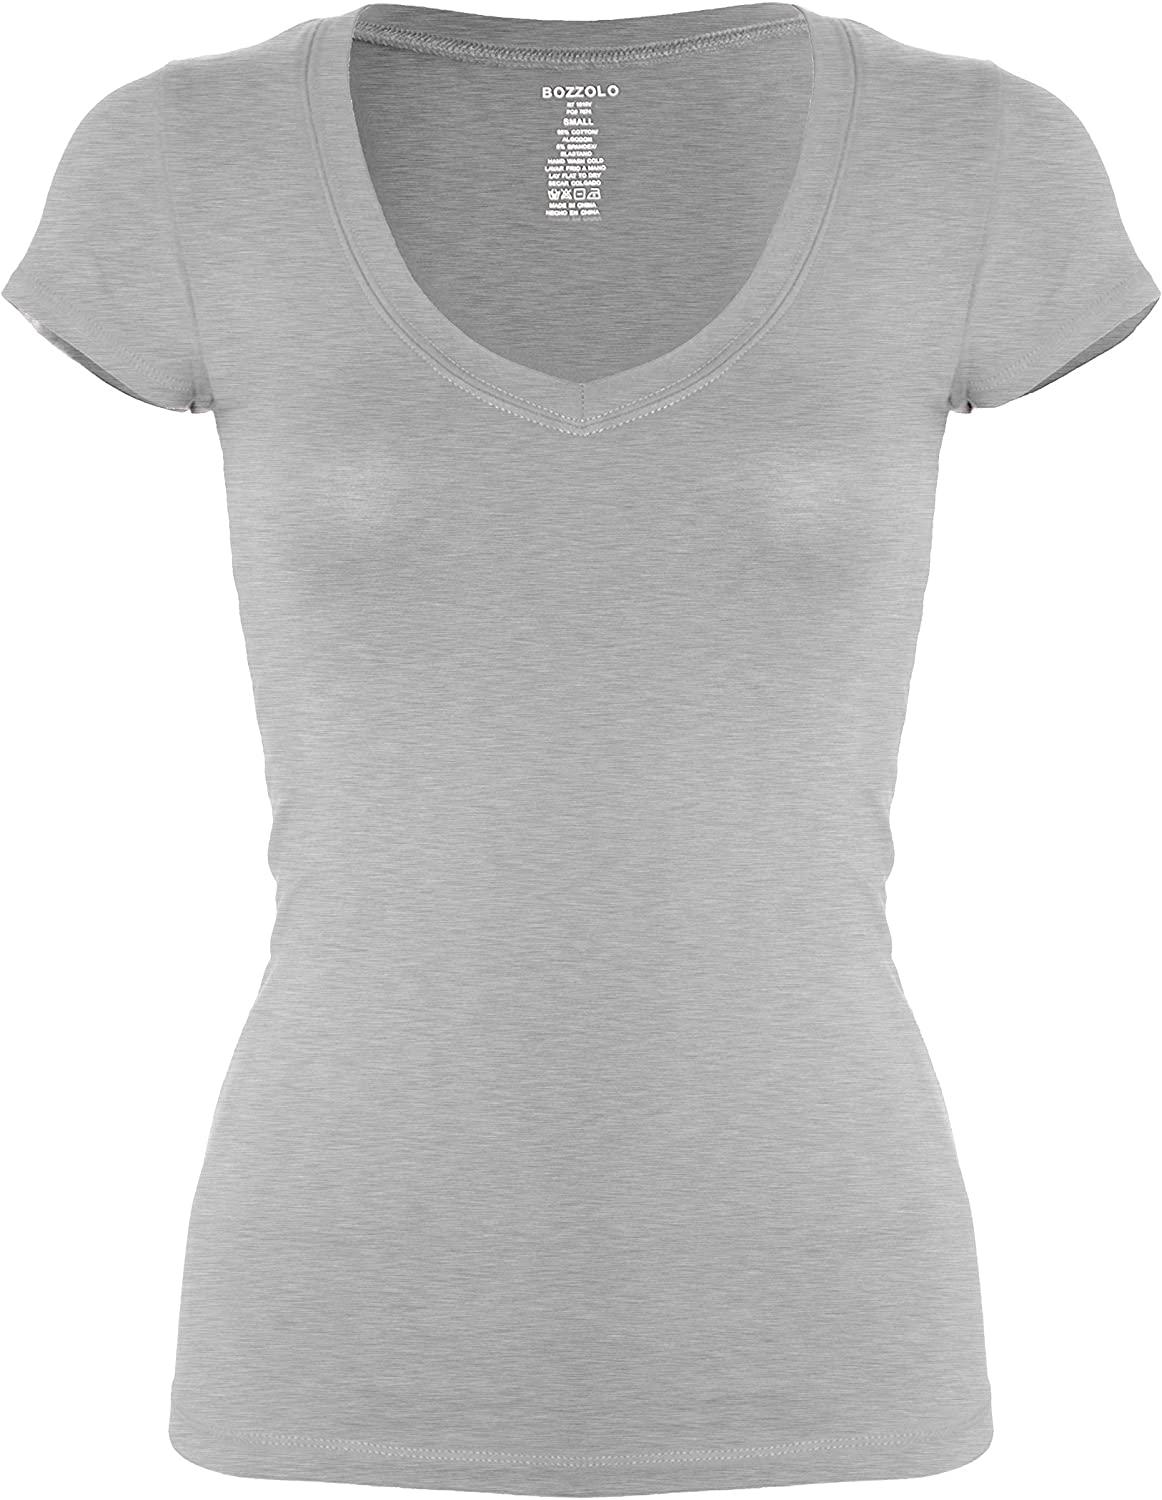 Bozzolo Womens Plain Basic V Neck Short Sleeve Cotton T-Shirts